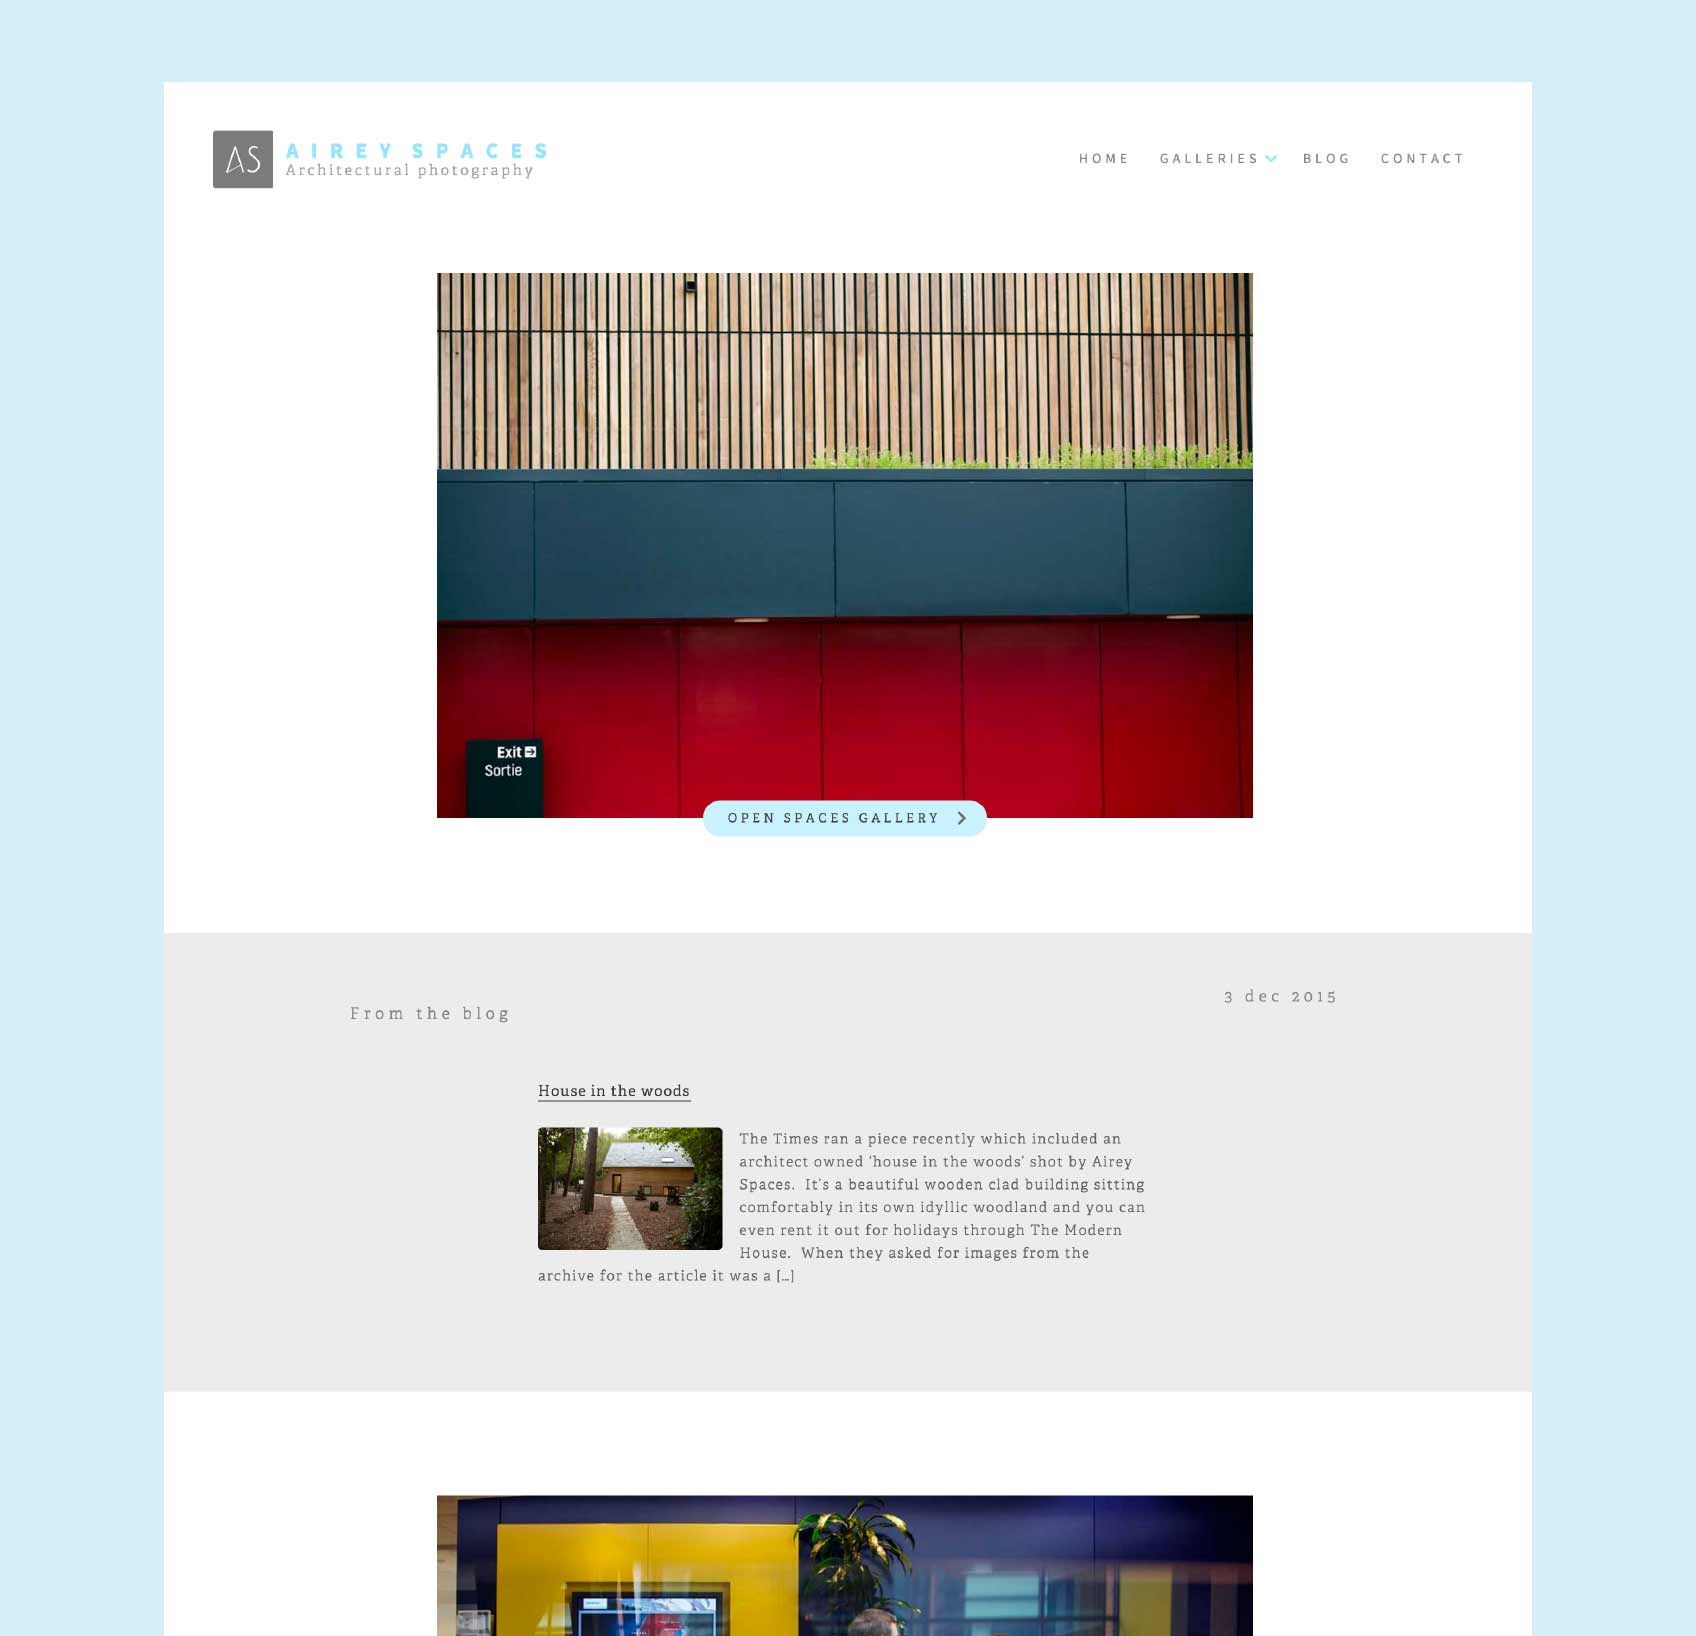 Airey Spaces homepage design by Geoff Muskett